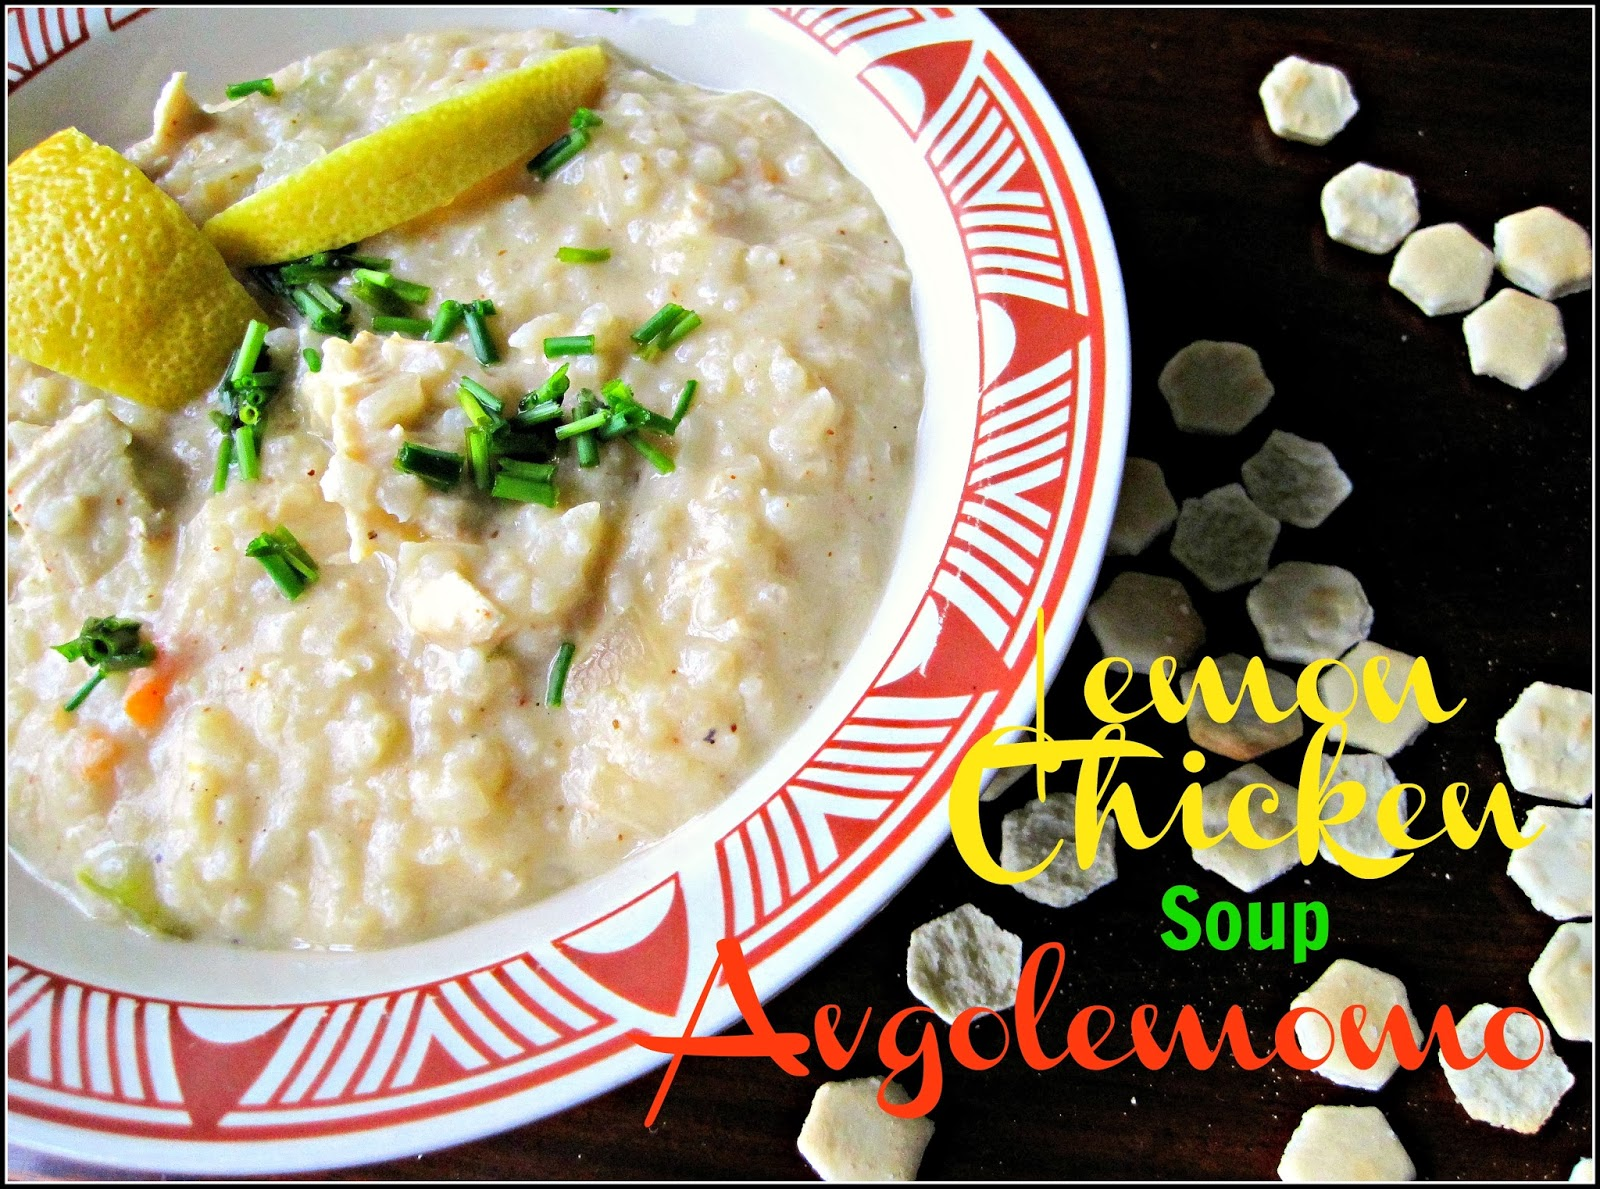 Avgolemono Lemon Rice and Chicken Soup Recipe, a classic tangy and creamy soup, done in just about 30 minute, just what we need in a cold winter night or any night